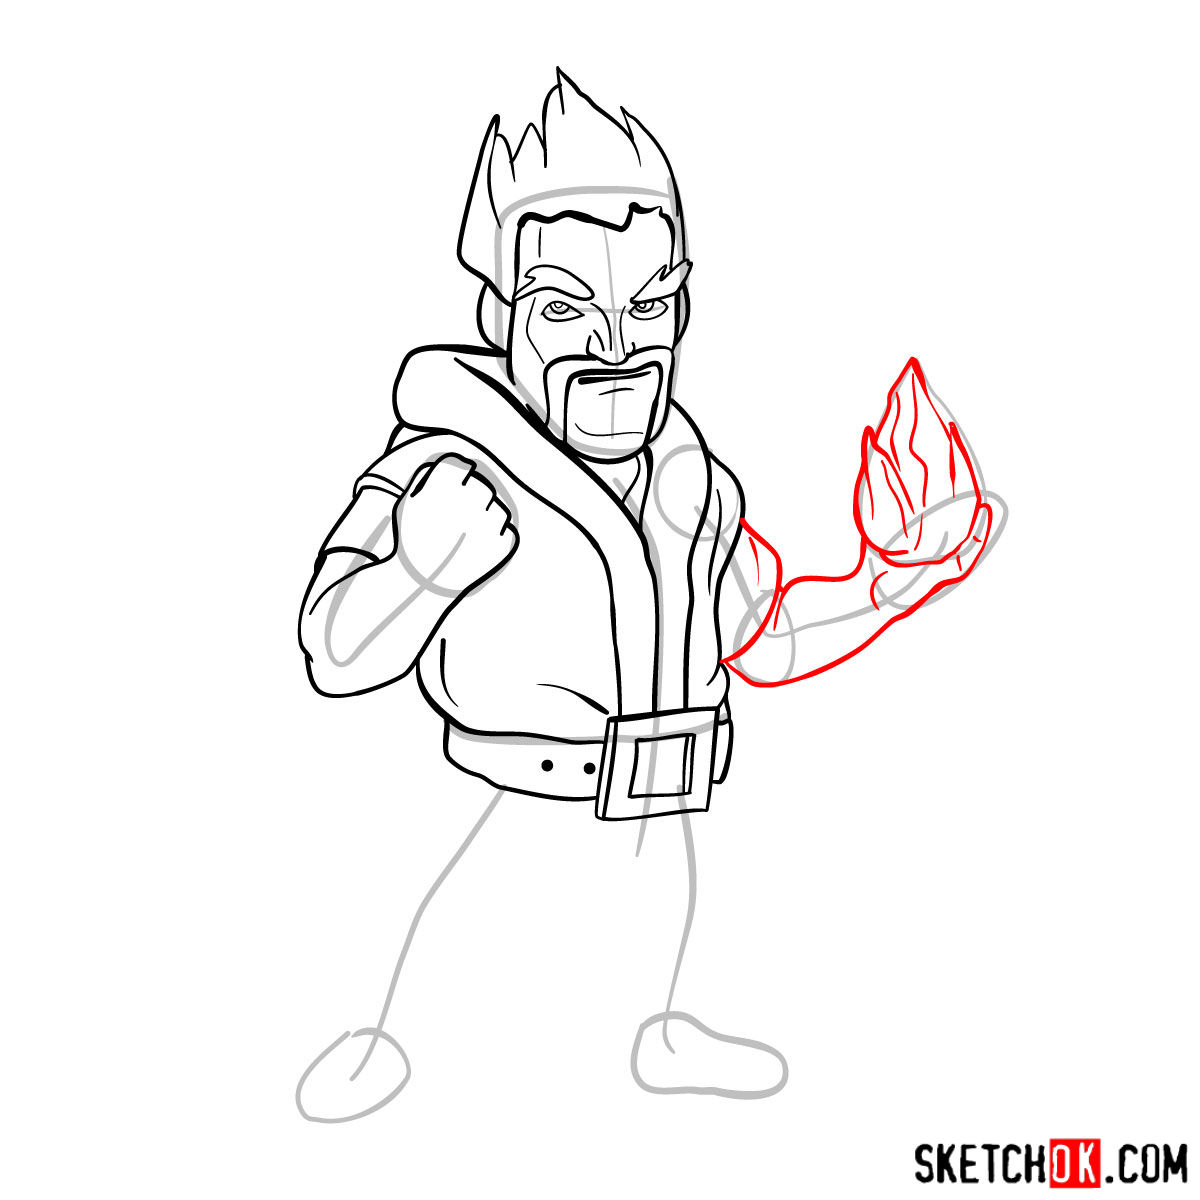 How to draw Ice Wizard from Clash of Clans - step 09